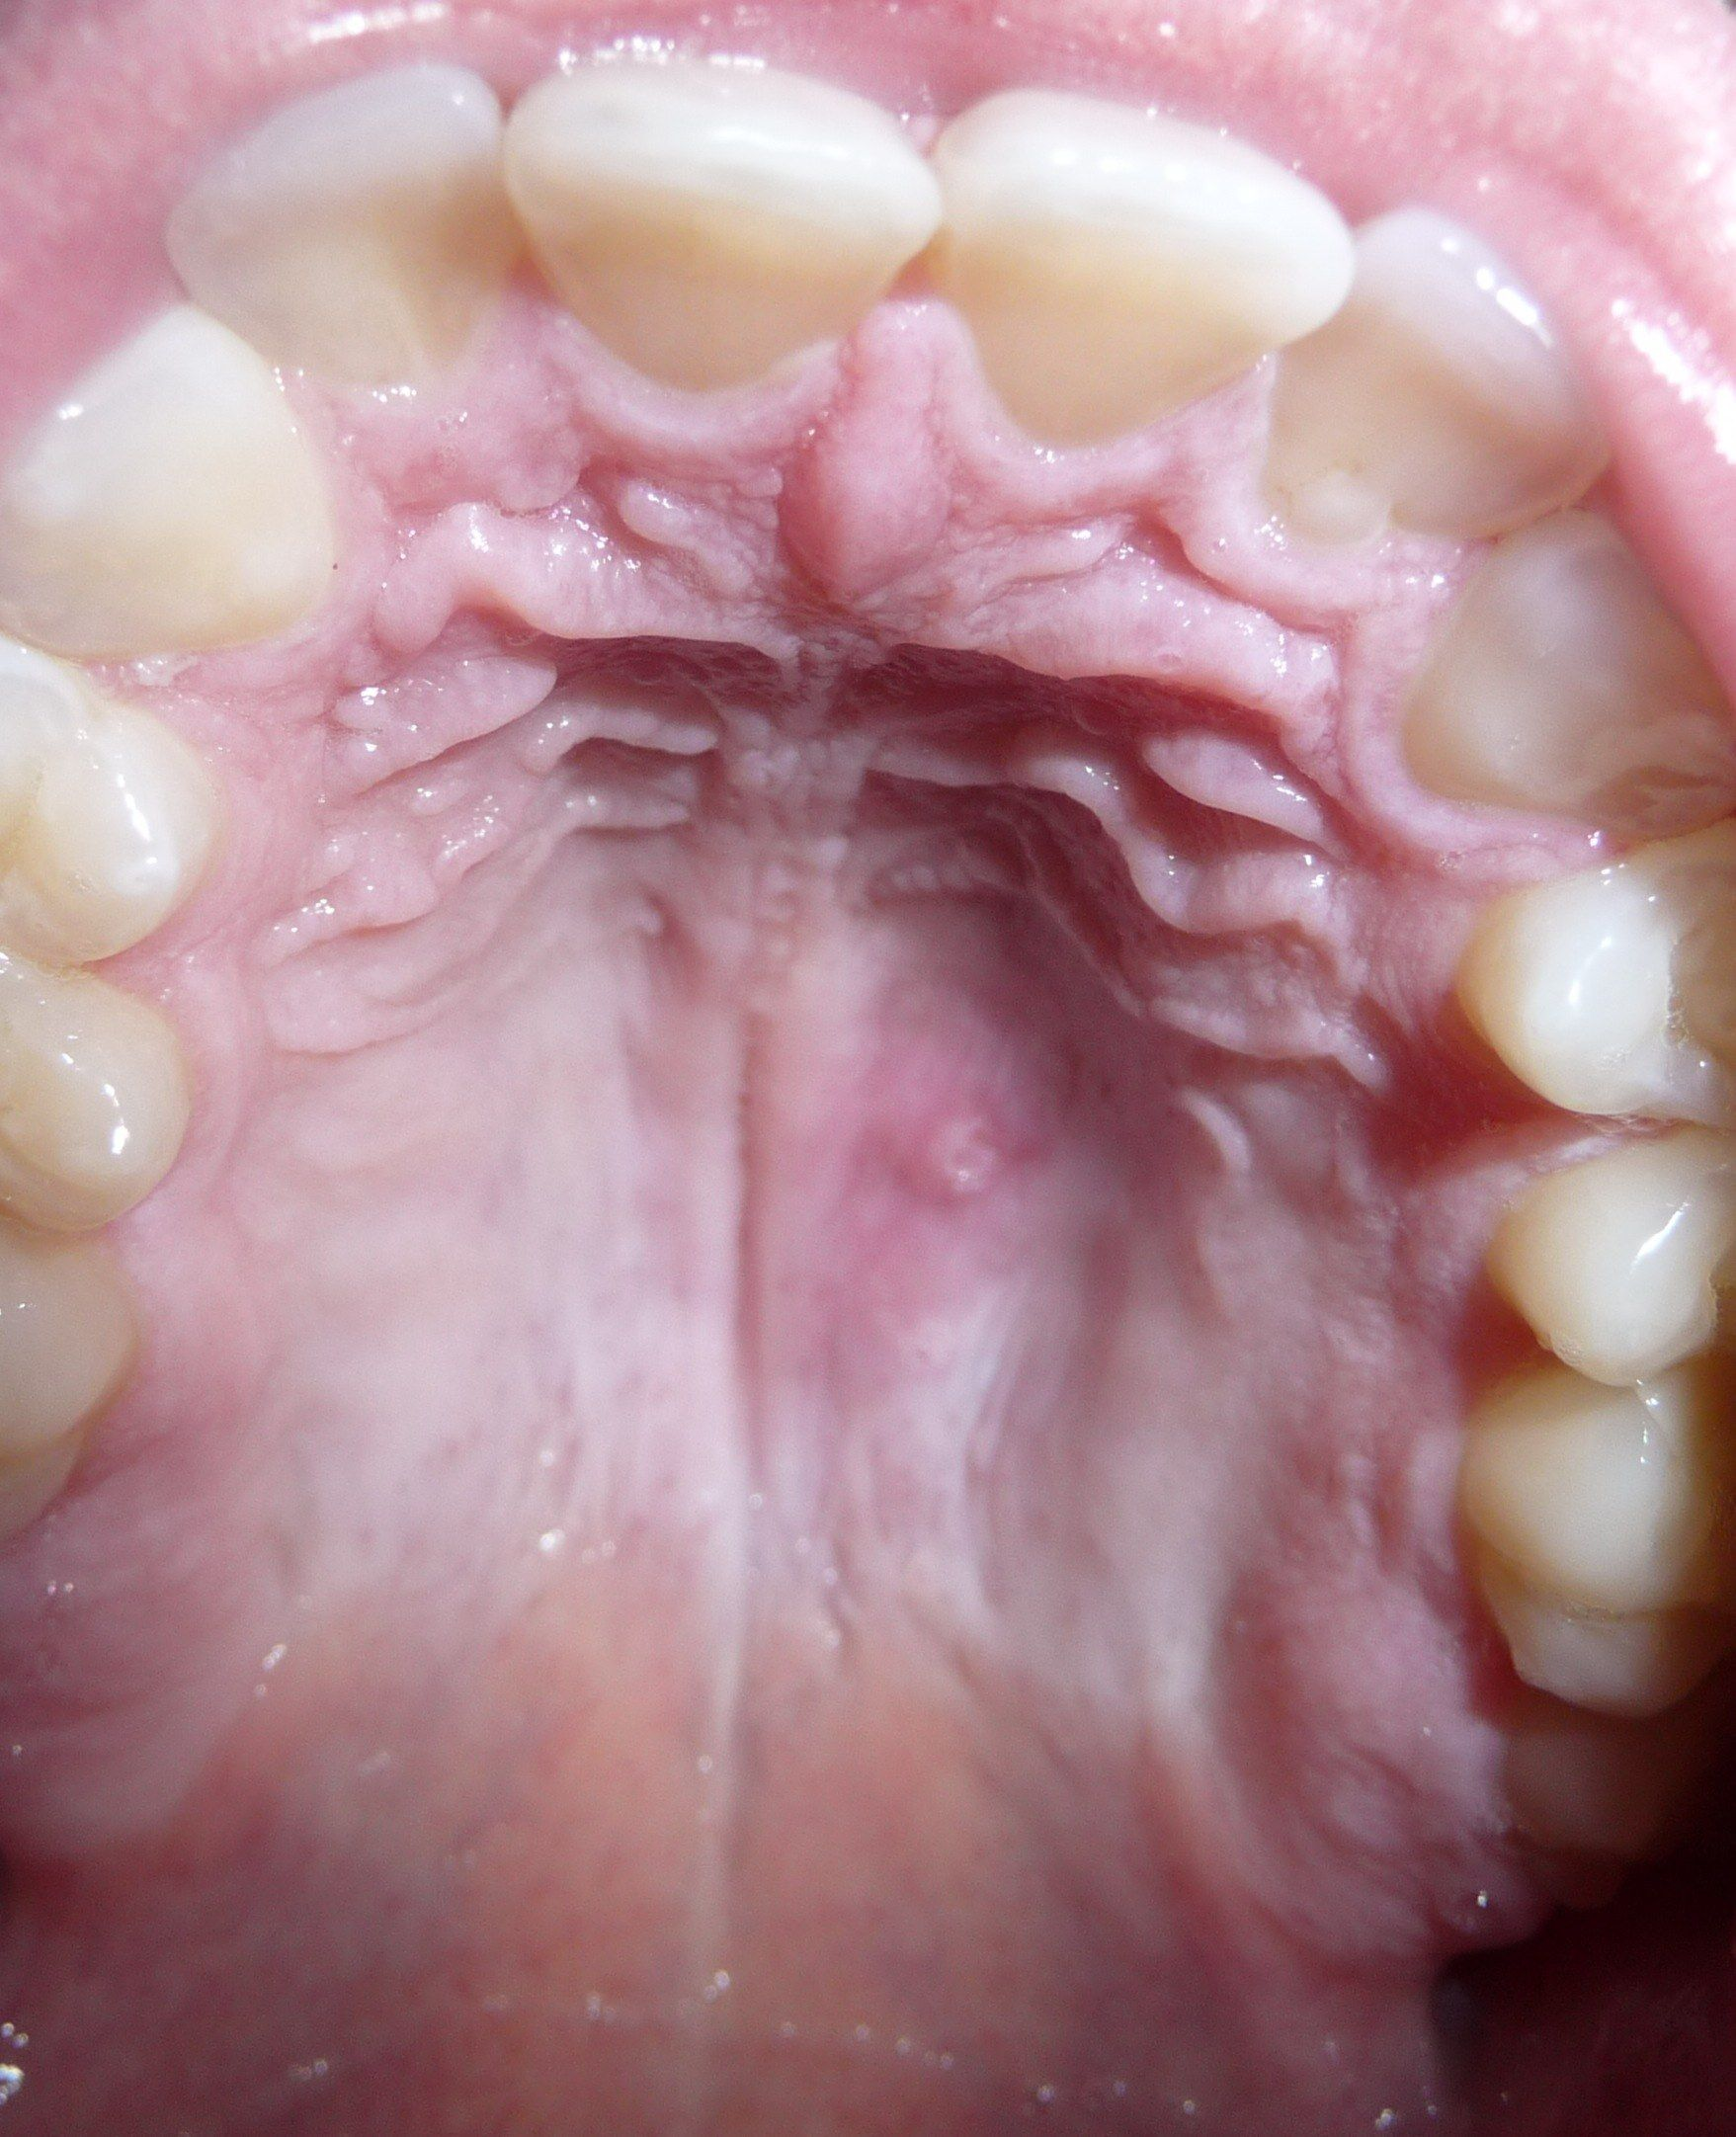 roof of mouth - Google Search | Anatomy_Reference | Pinterest ...